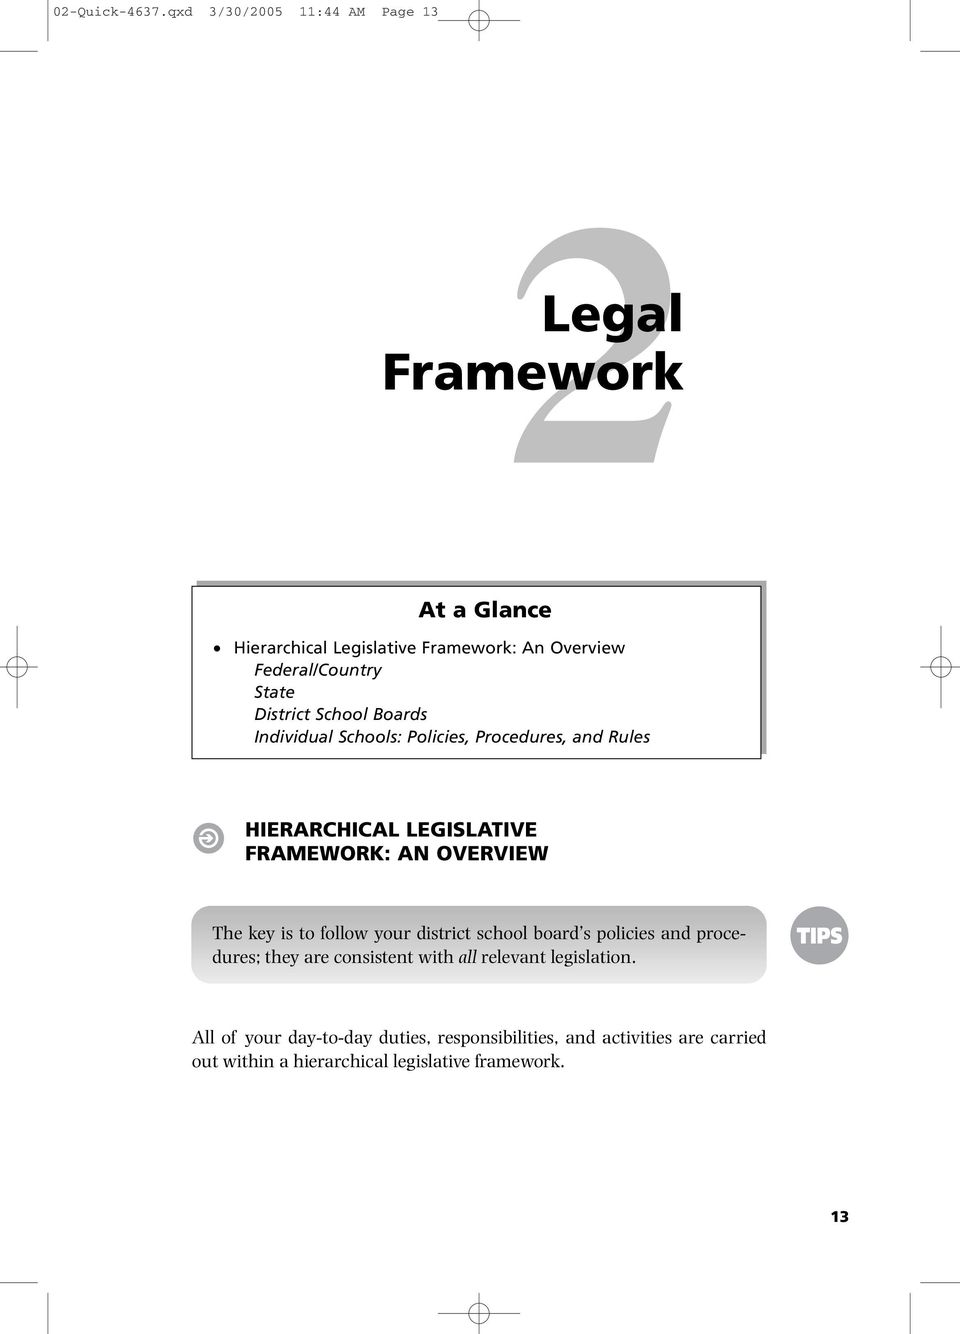 District School Boards Individual Schools: Policies, Procedures, and Rules HIERARCHICAL LEGISLATIVE FRAMEWORK: AN OVERVIEW The